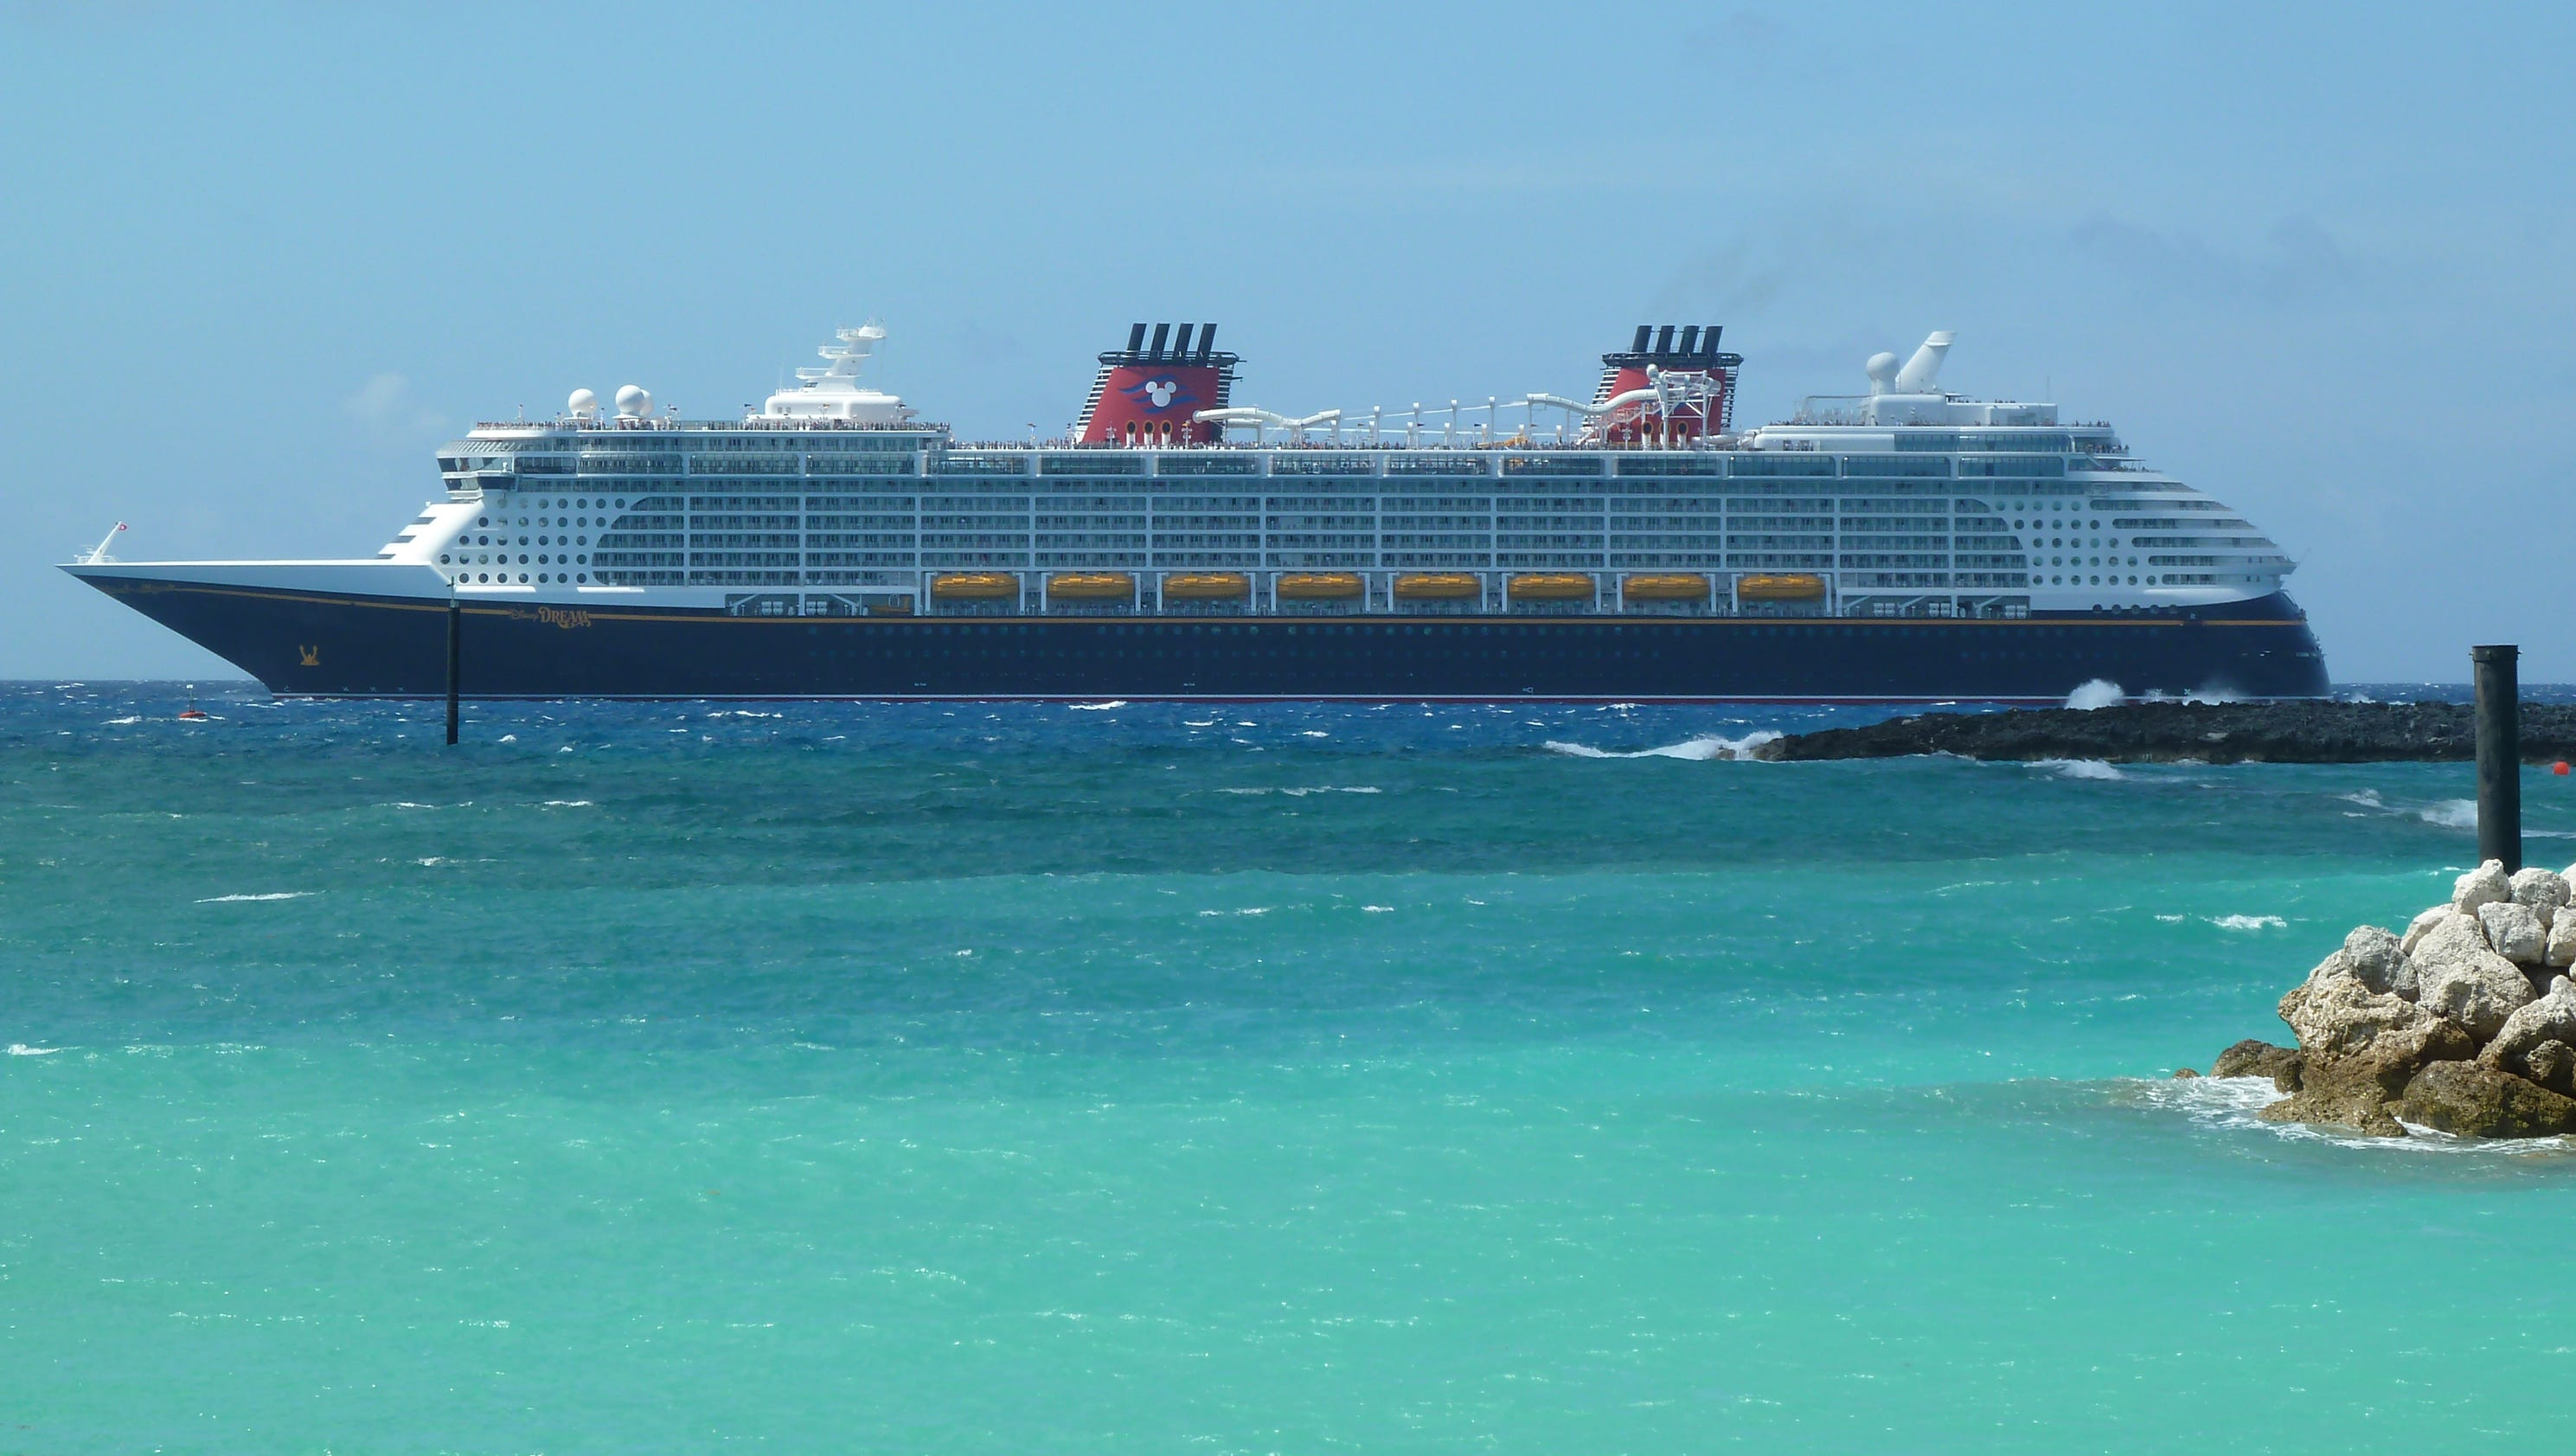 Cruise Ship Tours: Disney Dream, Fantasy Compared